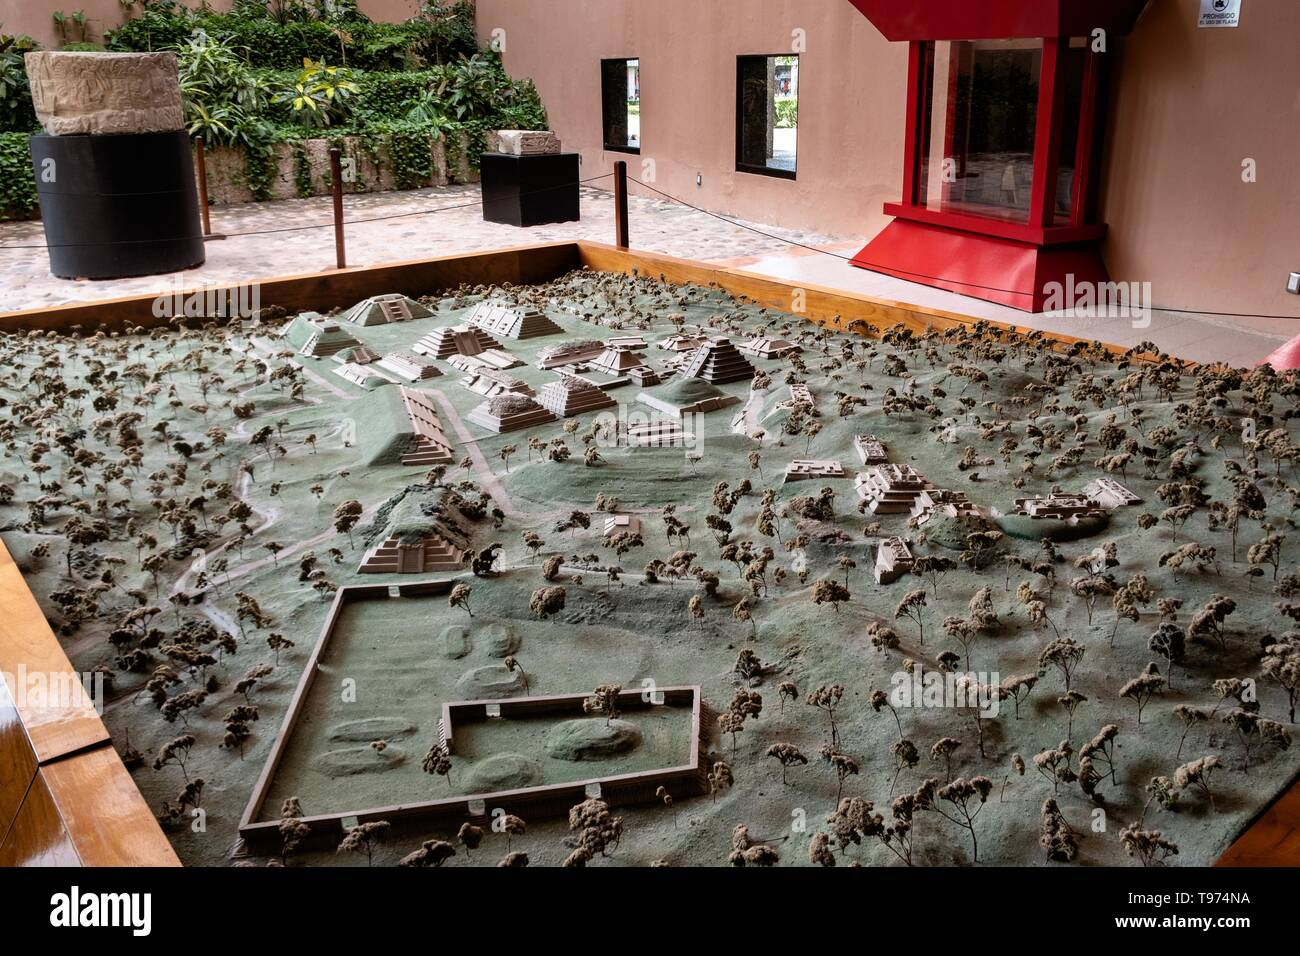 An architectural model in miniature of the pre-Columbian archeological complex of El Tajin on display in the museum in Tajin, Veracruz, Mexico. El Tajín flourished from 600 to 1200 CE and during this time numerous temples, palaces, ballcourts, and pyramids were built by the Totonac people and is one of the largest and most important cities of the Classic era of Mesoamerica. - Stock Image